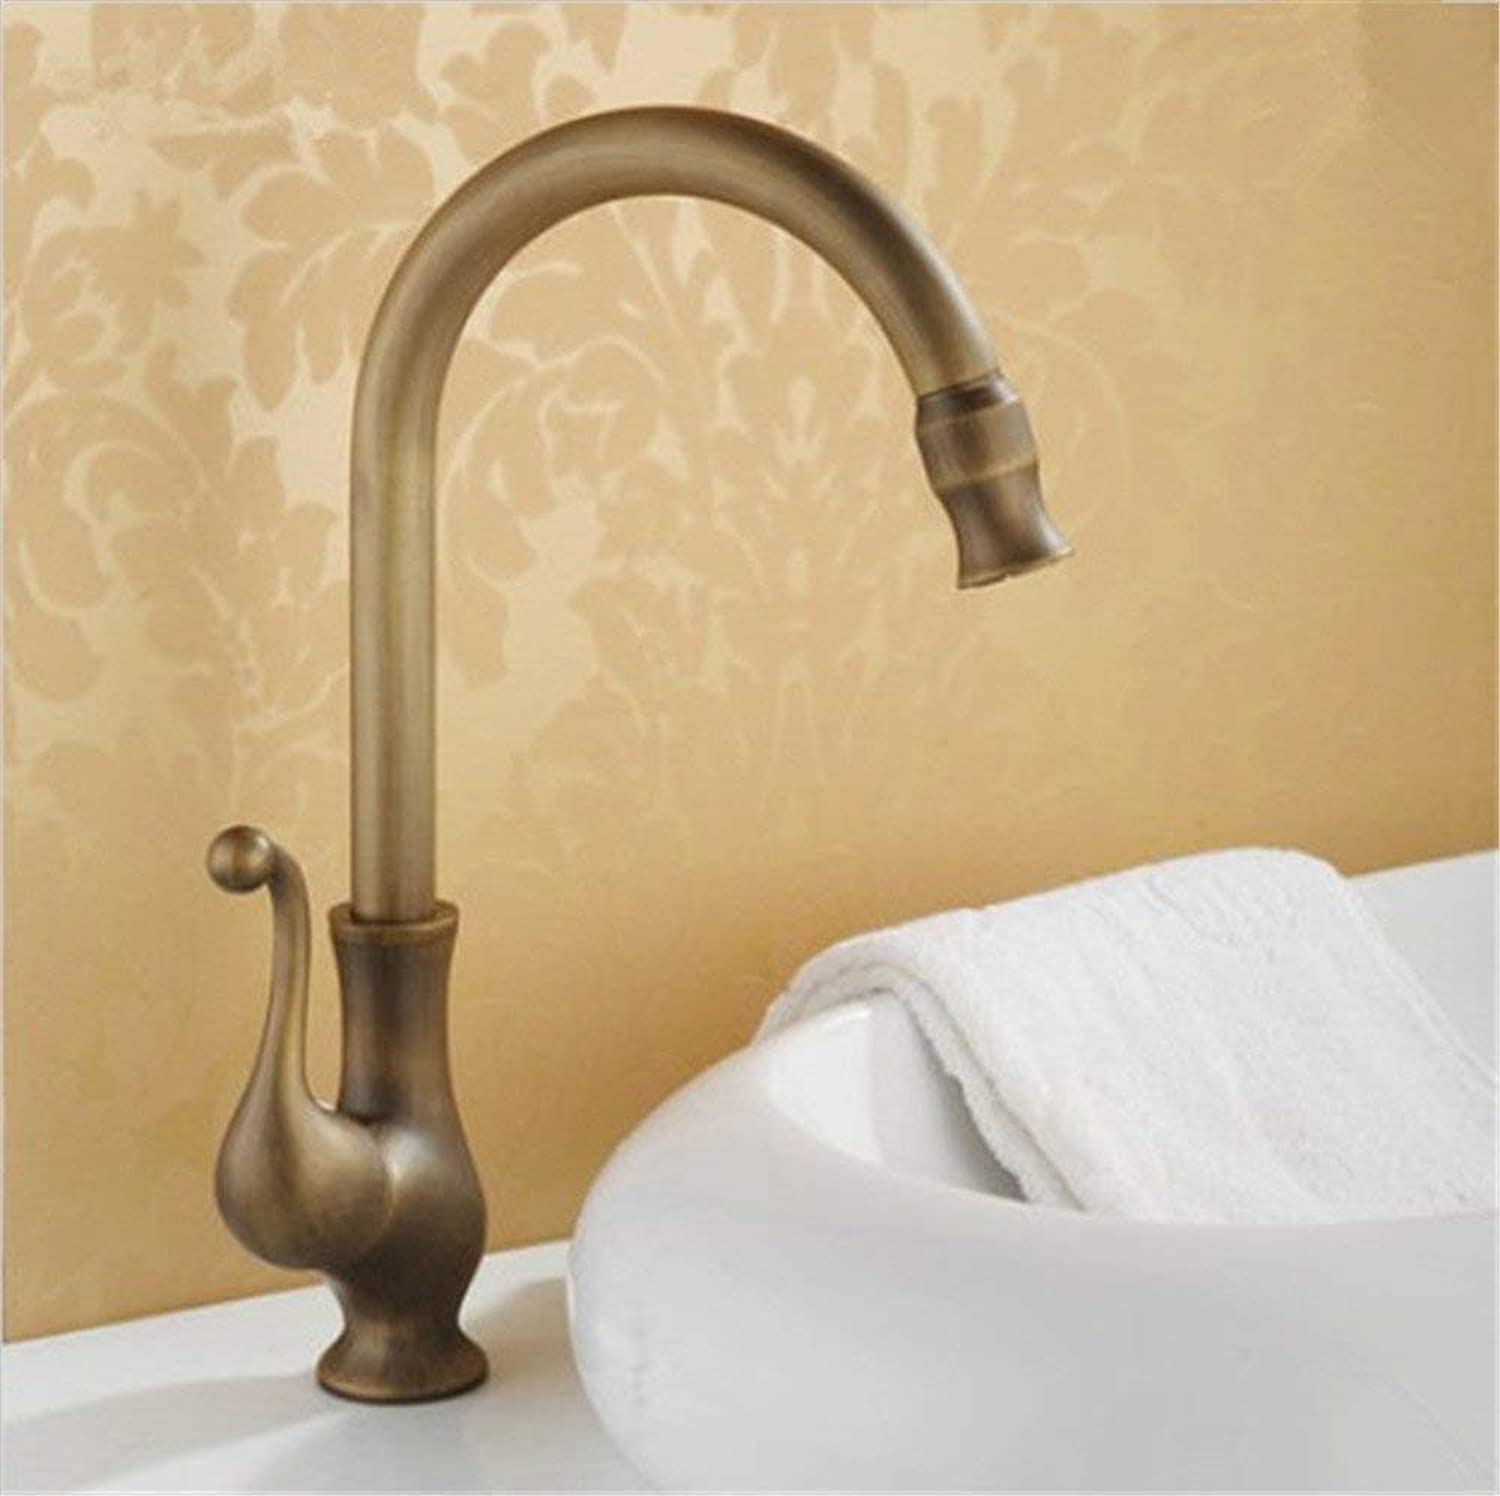 Oudan European Antique Faucet Copper Kitchen Sink Faucet Hot and Cold Water Mixing Faucet Art Basin Above Counter Basin (color   -, Size   -)